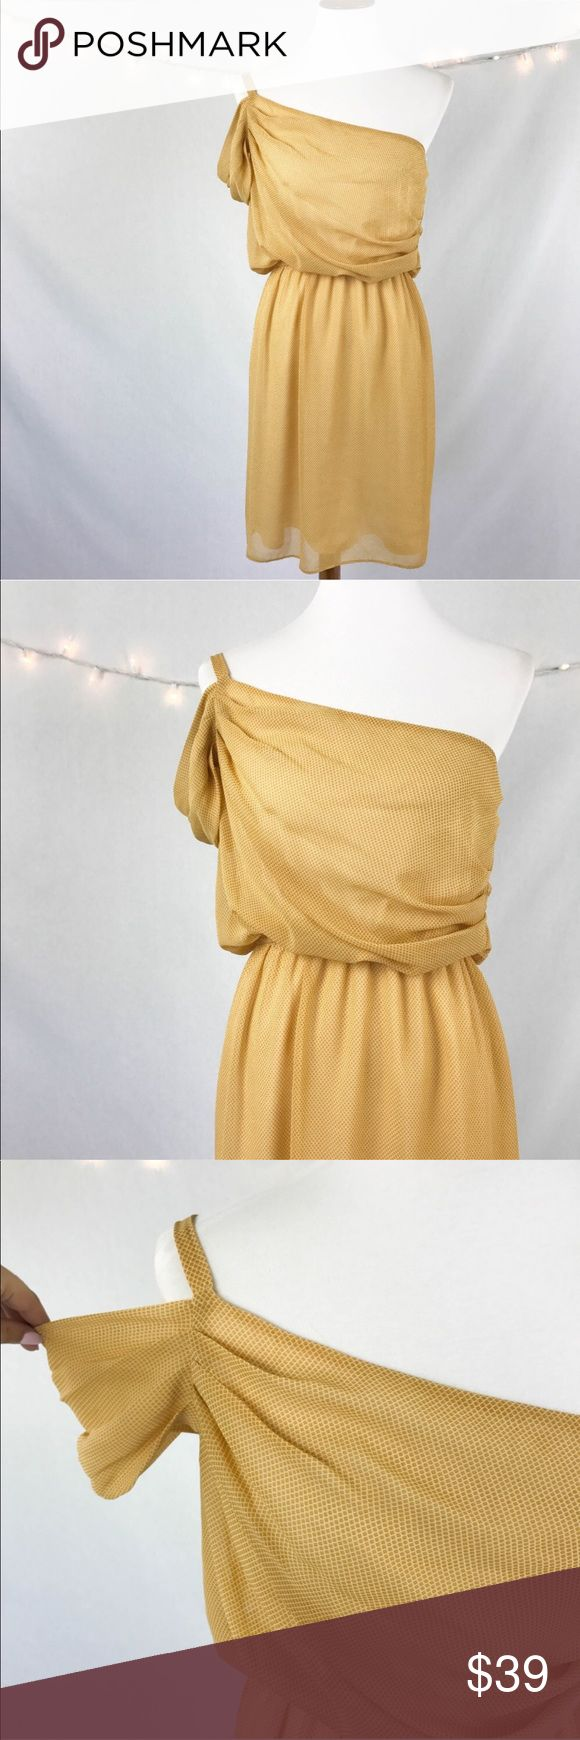 "Judith March Off the Shoulder Yellow Dress Large Judith March Women's Dress Blouson Large Yellow Off The One Shoulder  Type: Dress  Style: One Shoulder  Brand: Judith March  Material: 100% Polyester  Color: Yellow  Measurements: Bust 19.5"" Waist 13""-20"" Length 37""  Condition: No snags, stains, or pilling.  Country of Manufacturer: USA Judith March Dresses One Shoulder"